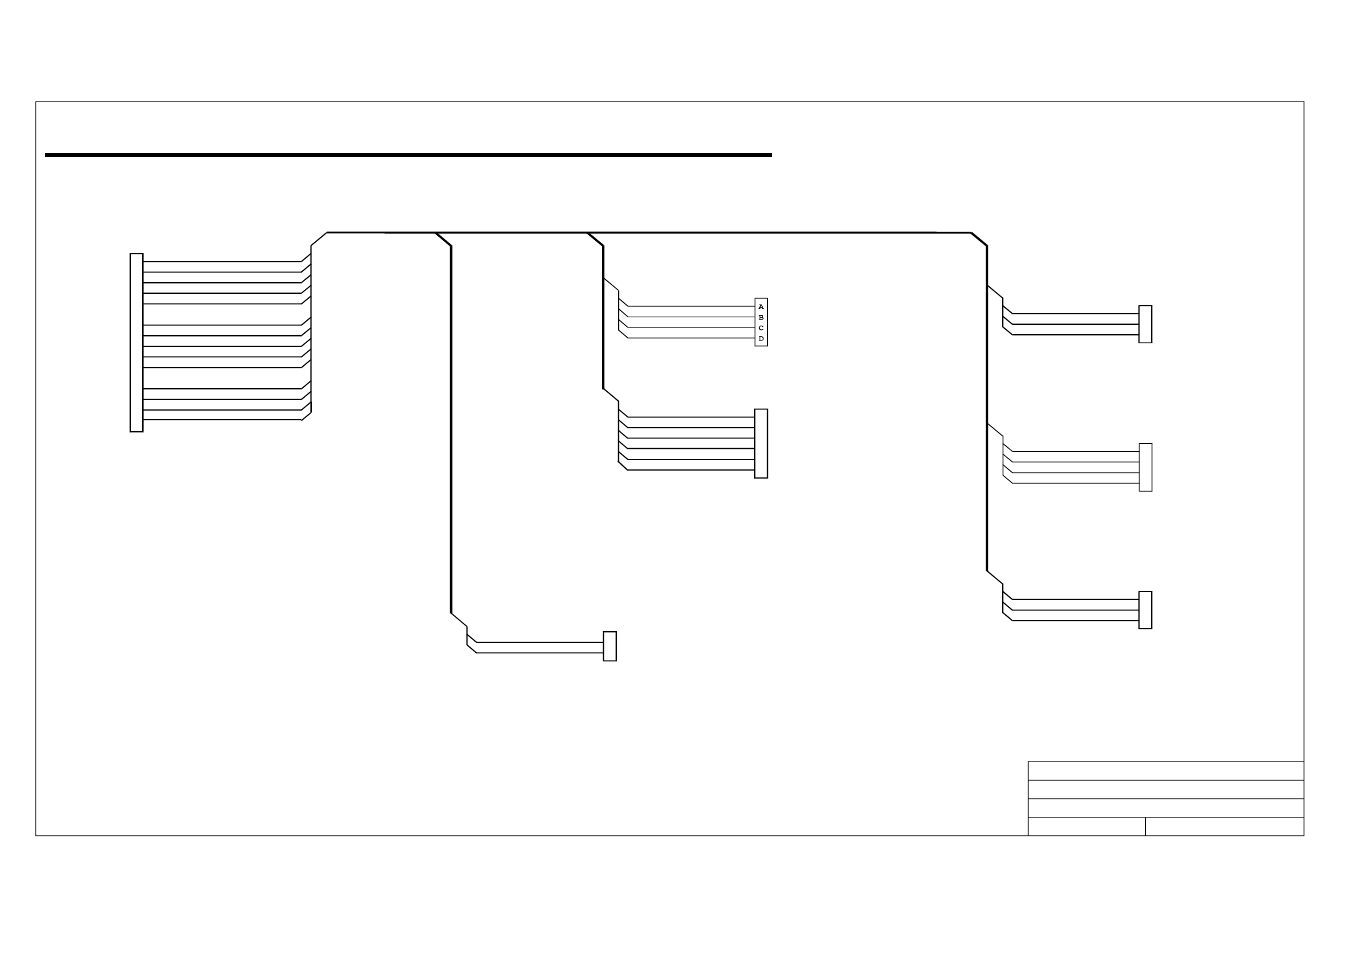 hight resolution of appendix a wiring diagrams haltech f9a user manual page 98 99